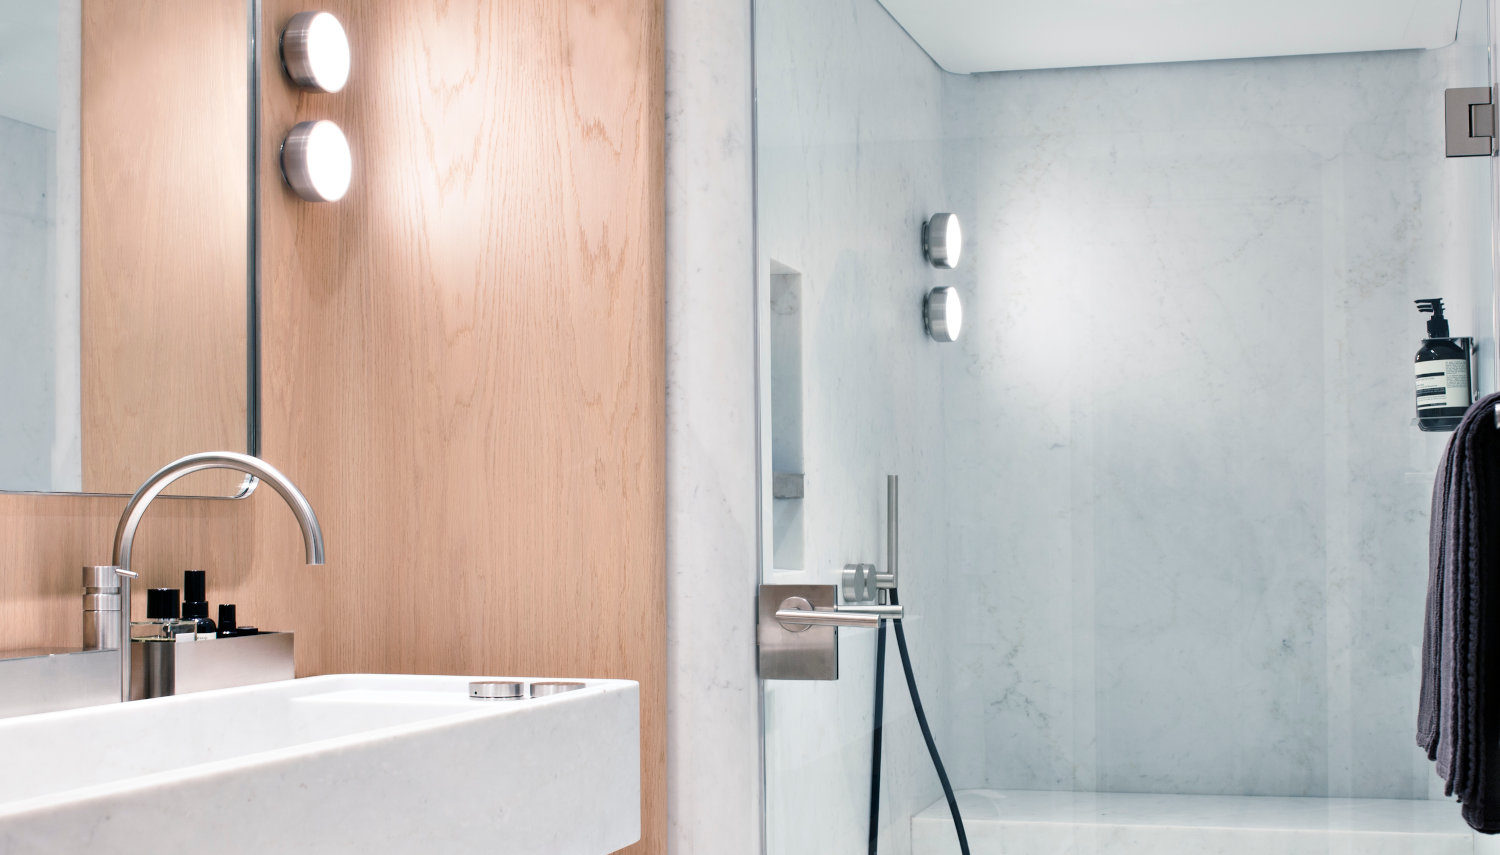 Vripack – Refit RH3 – Creating a home from home - Image of the bathroom - Luxury materials - Belgian architect Vincent Van Duysen